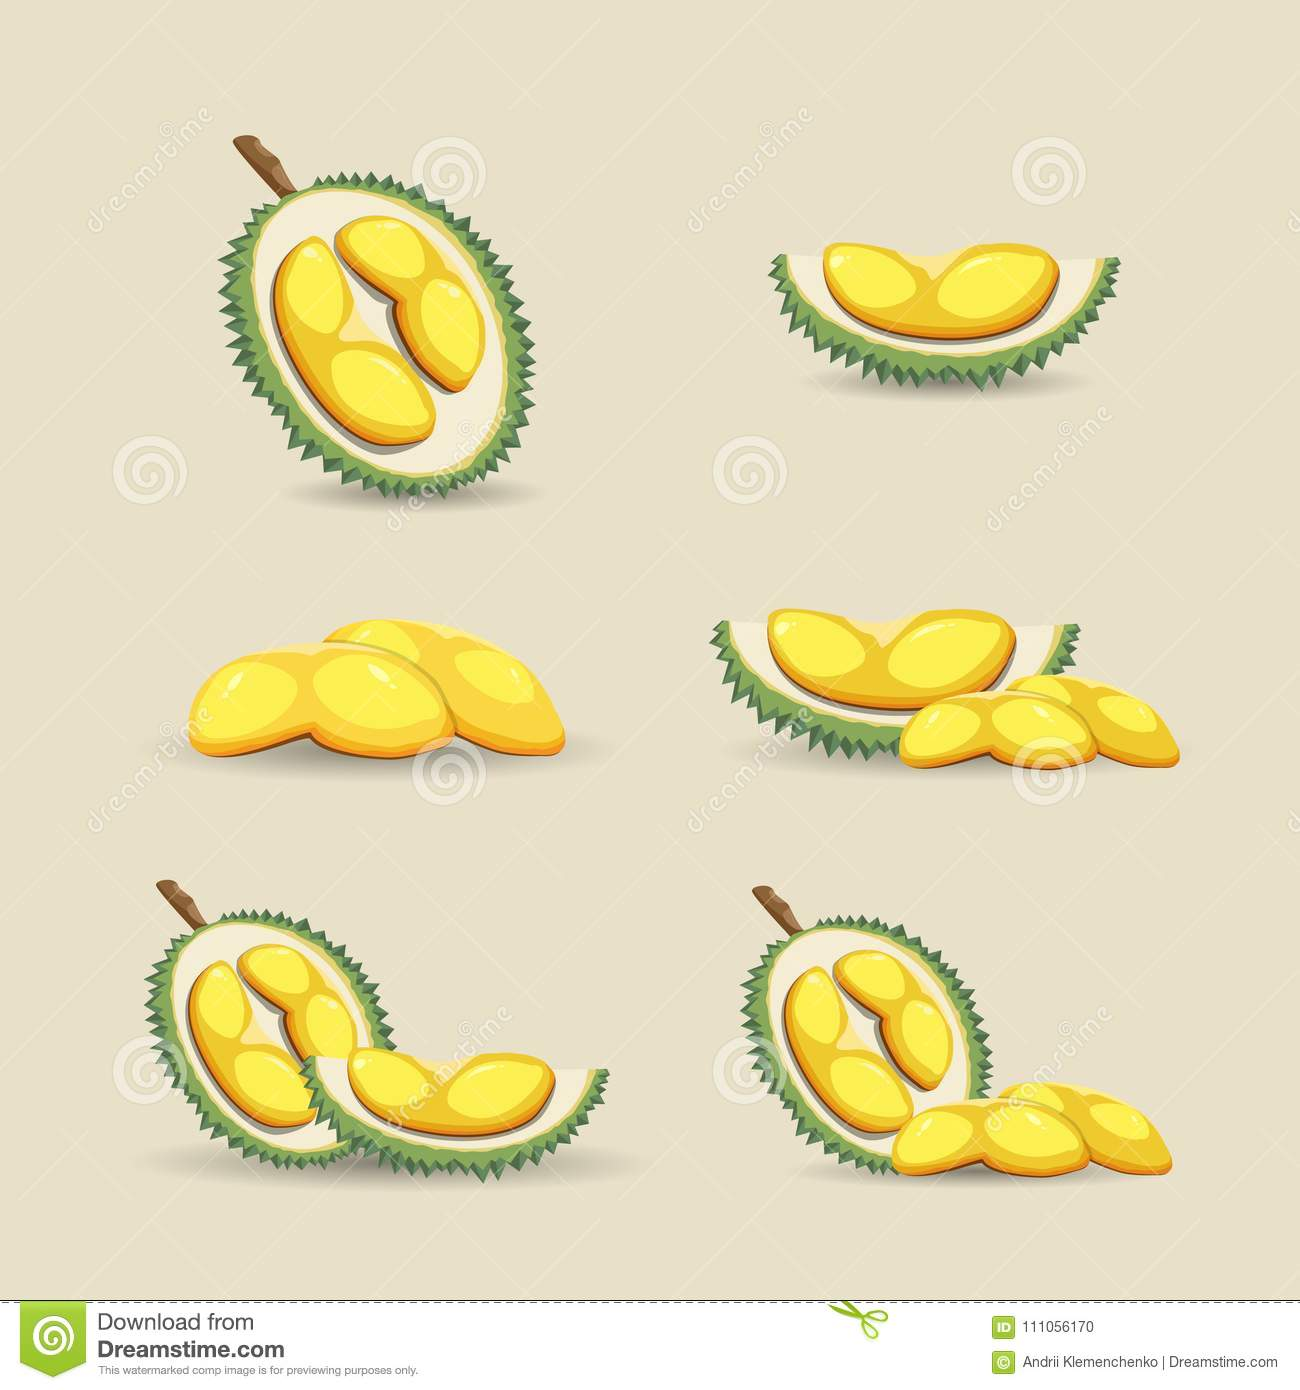 halves of a tropical durian fruit on a light background. fresh and